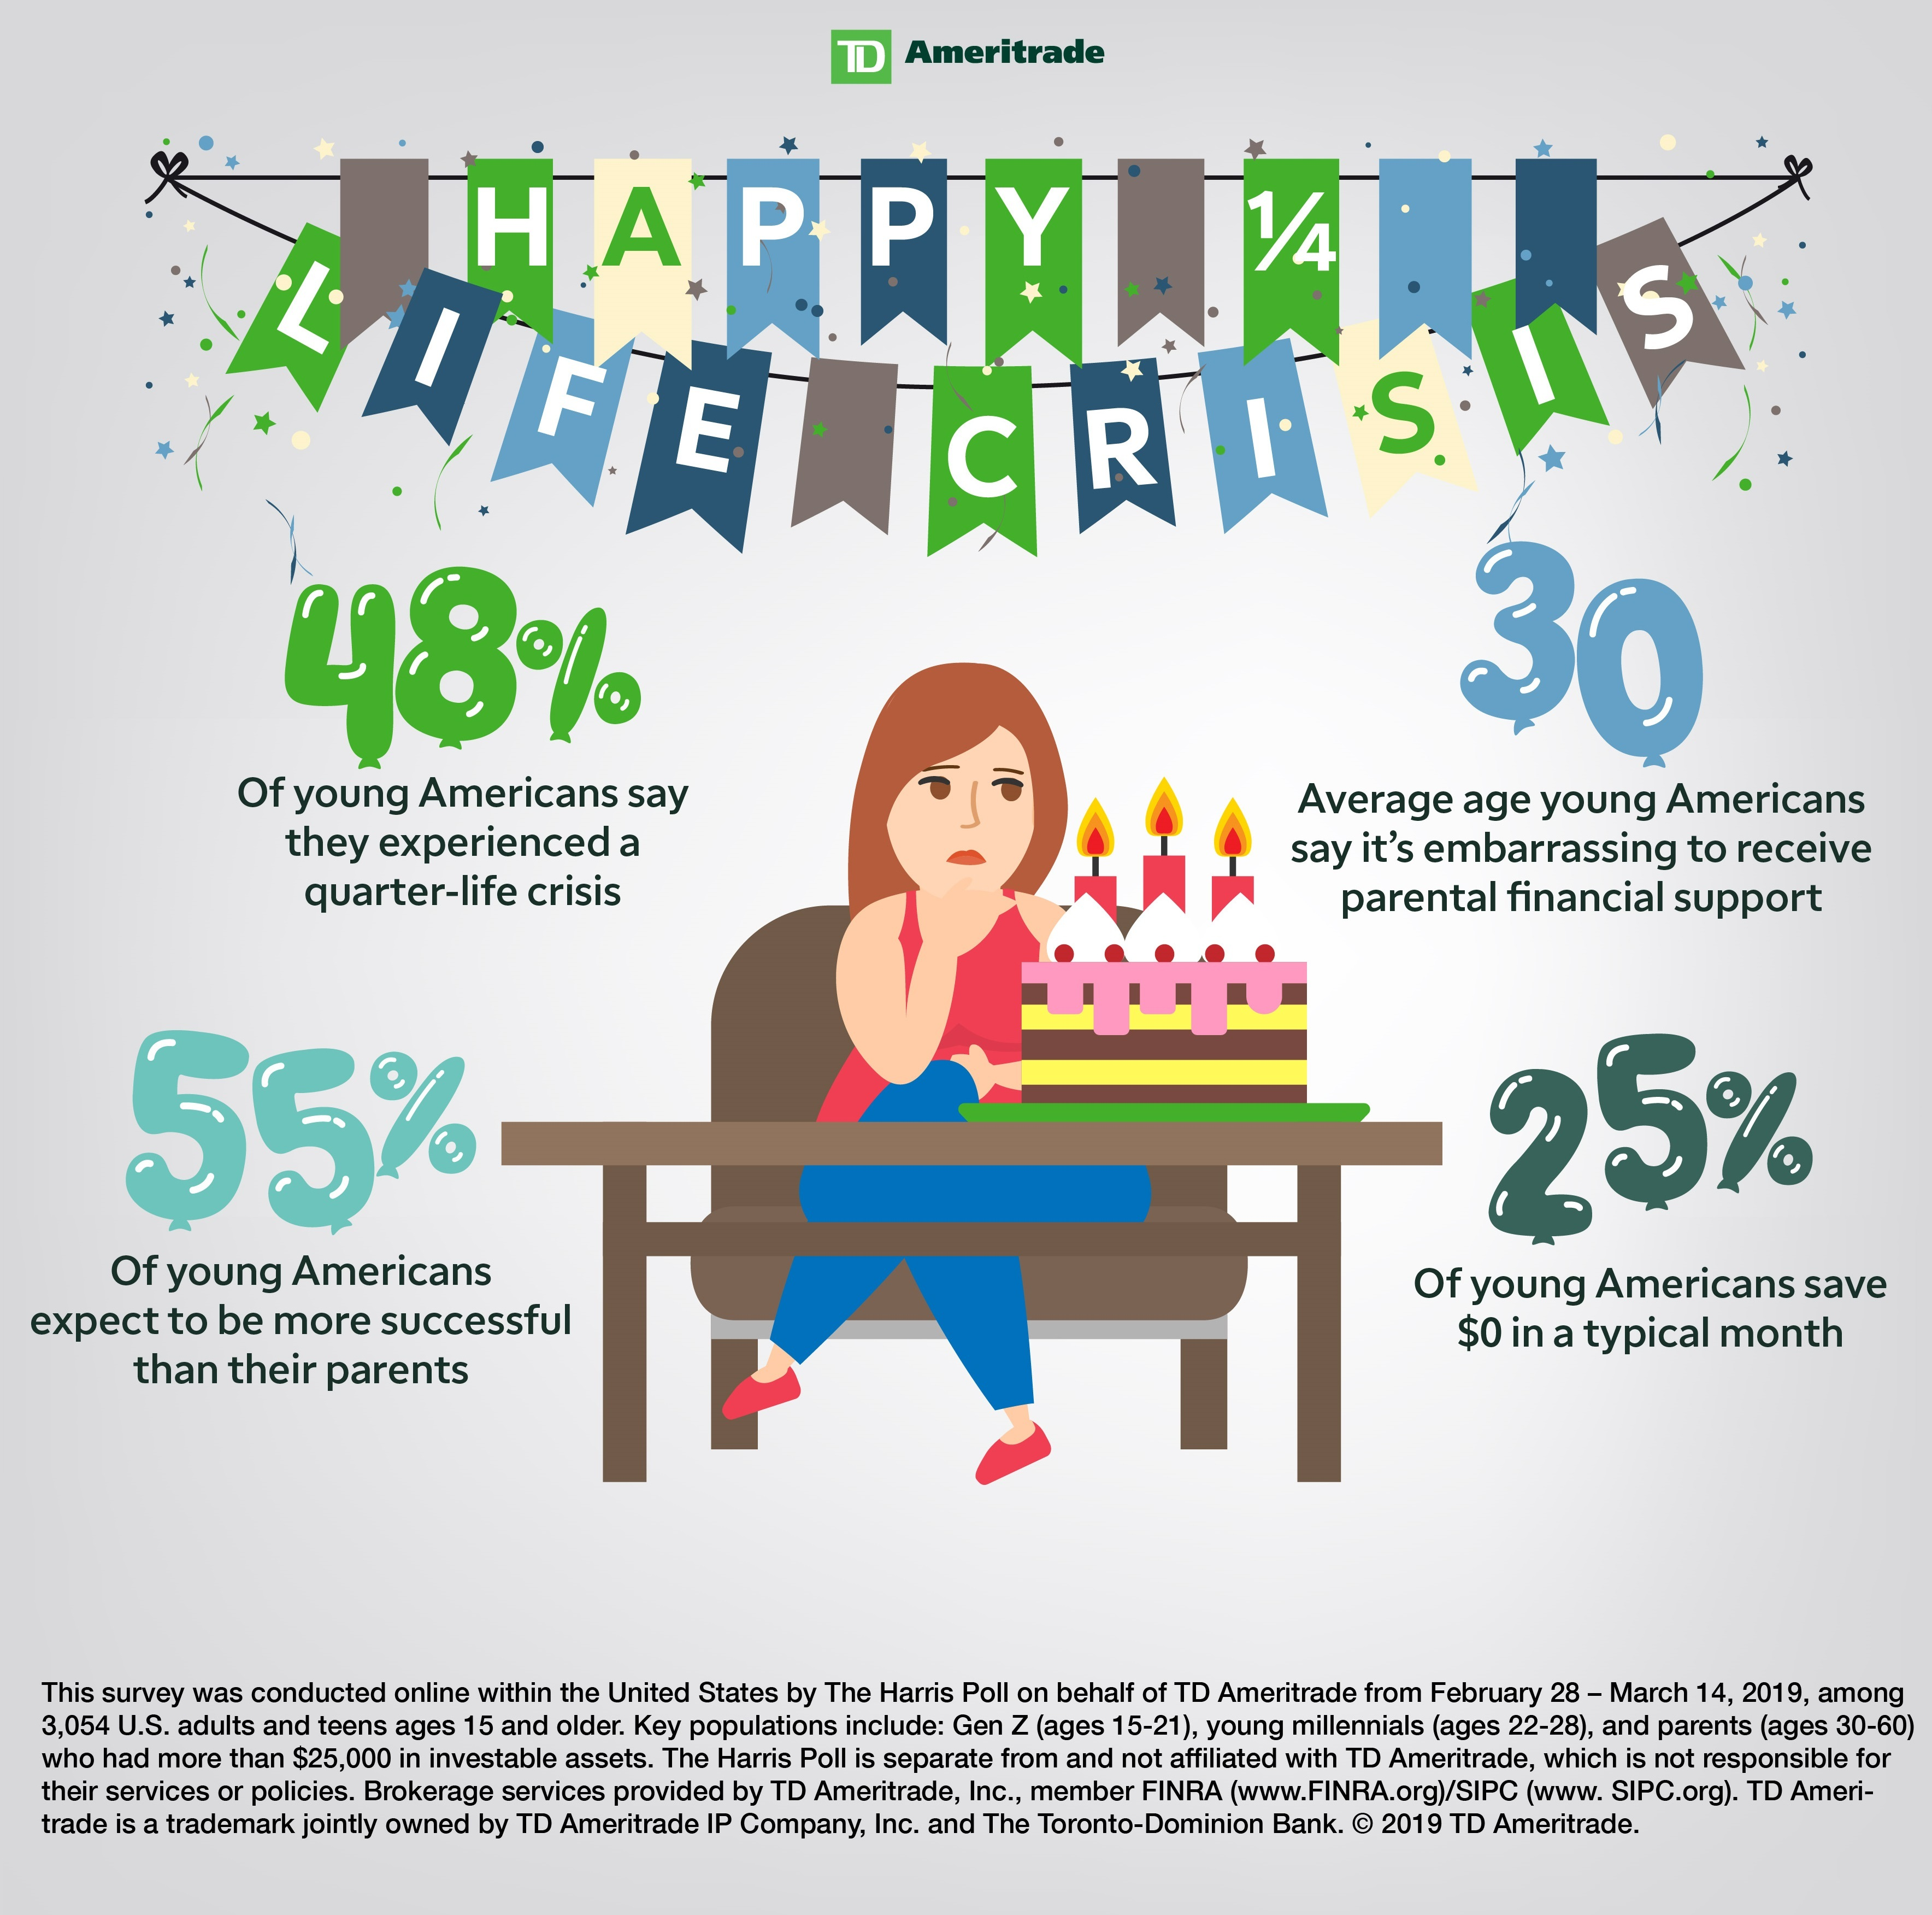 Nearly Half of Young Americans Have Experienced a Quarter